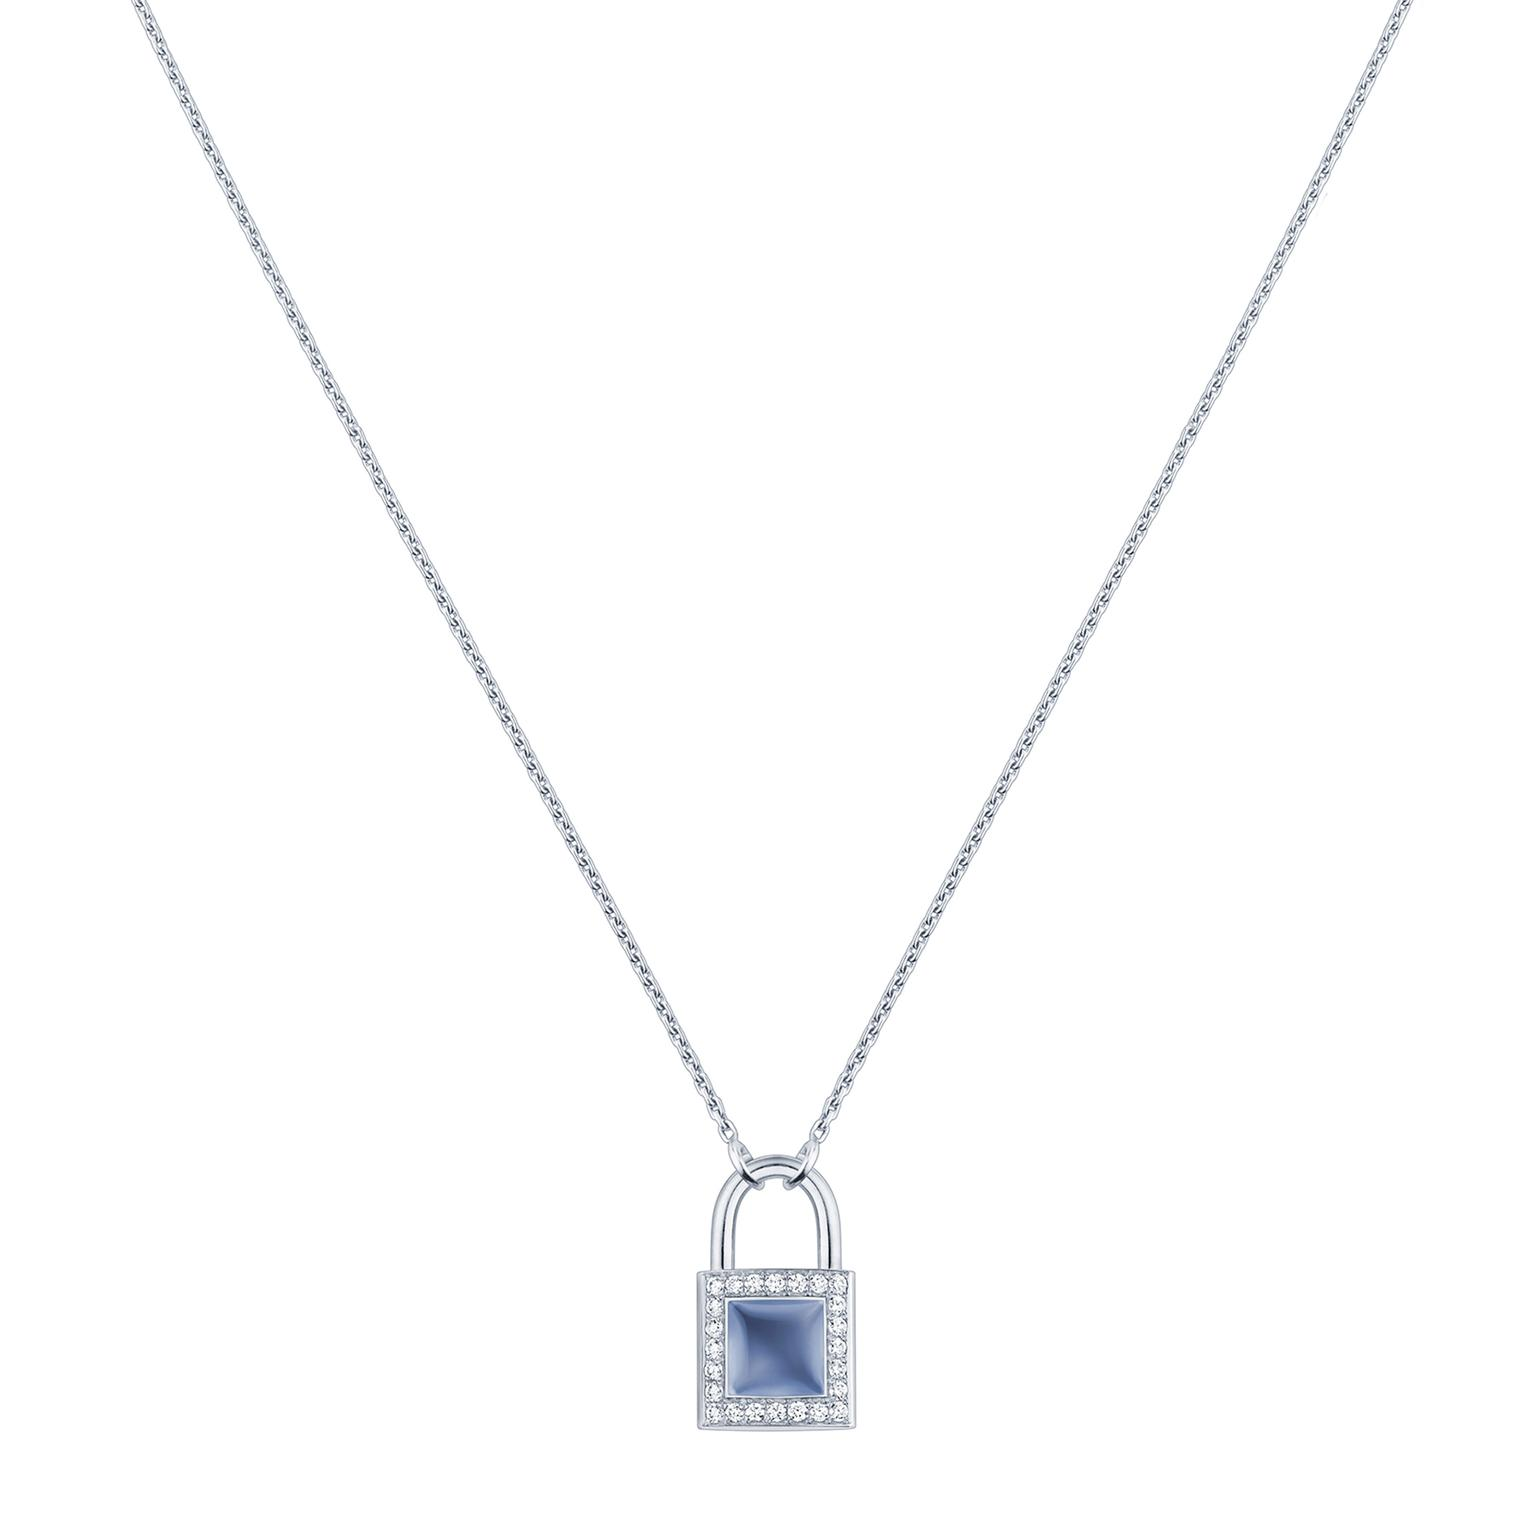 Louis Vuitton Lockit chalcendony pendant